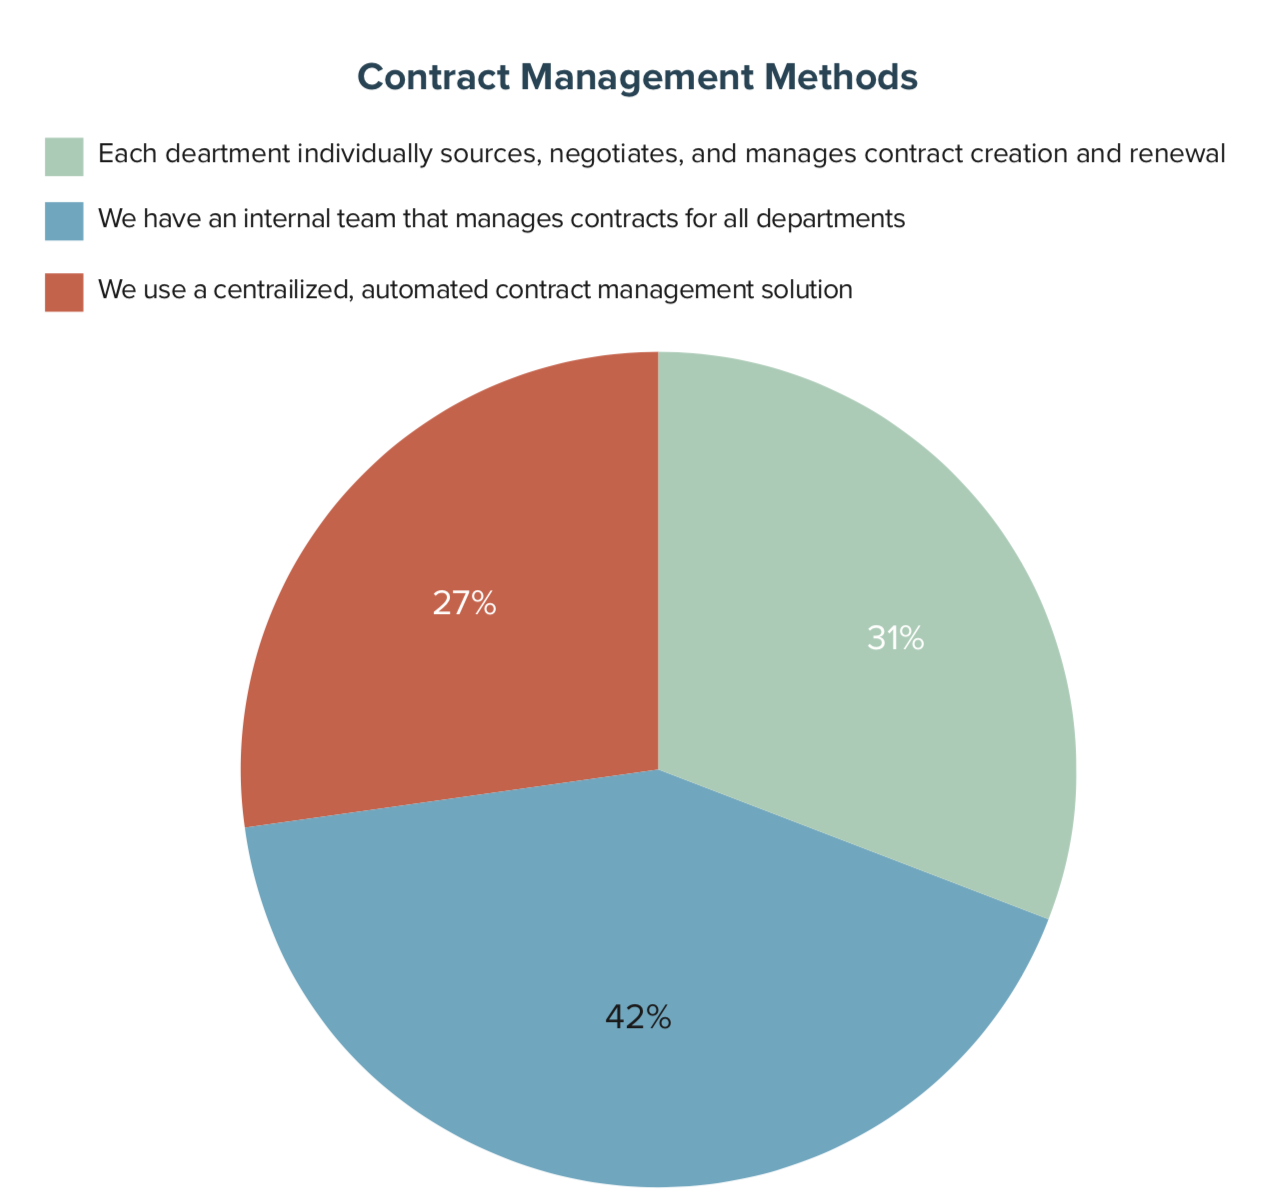 Contract Management Methods